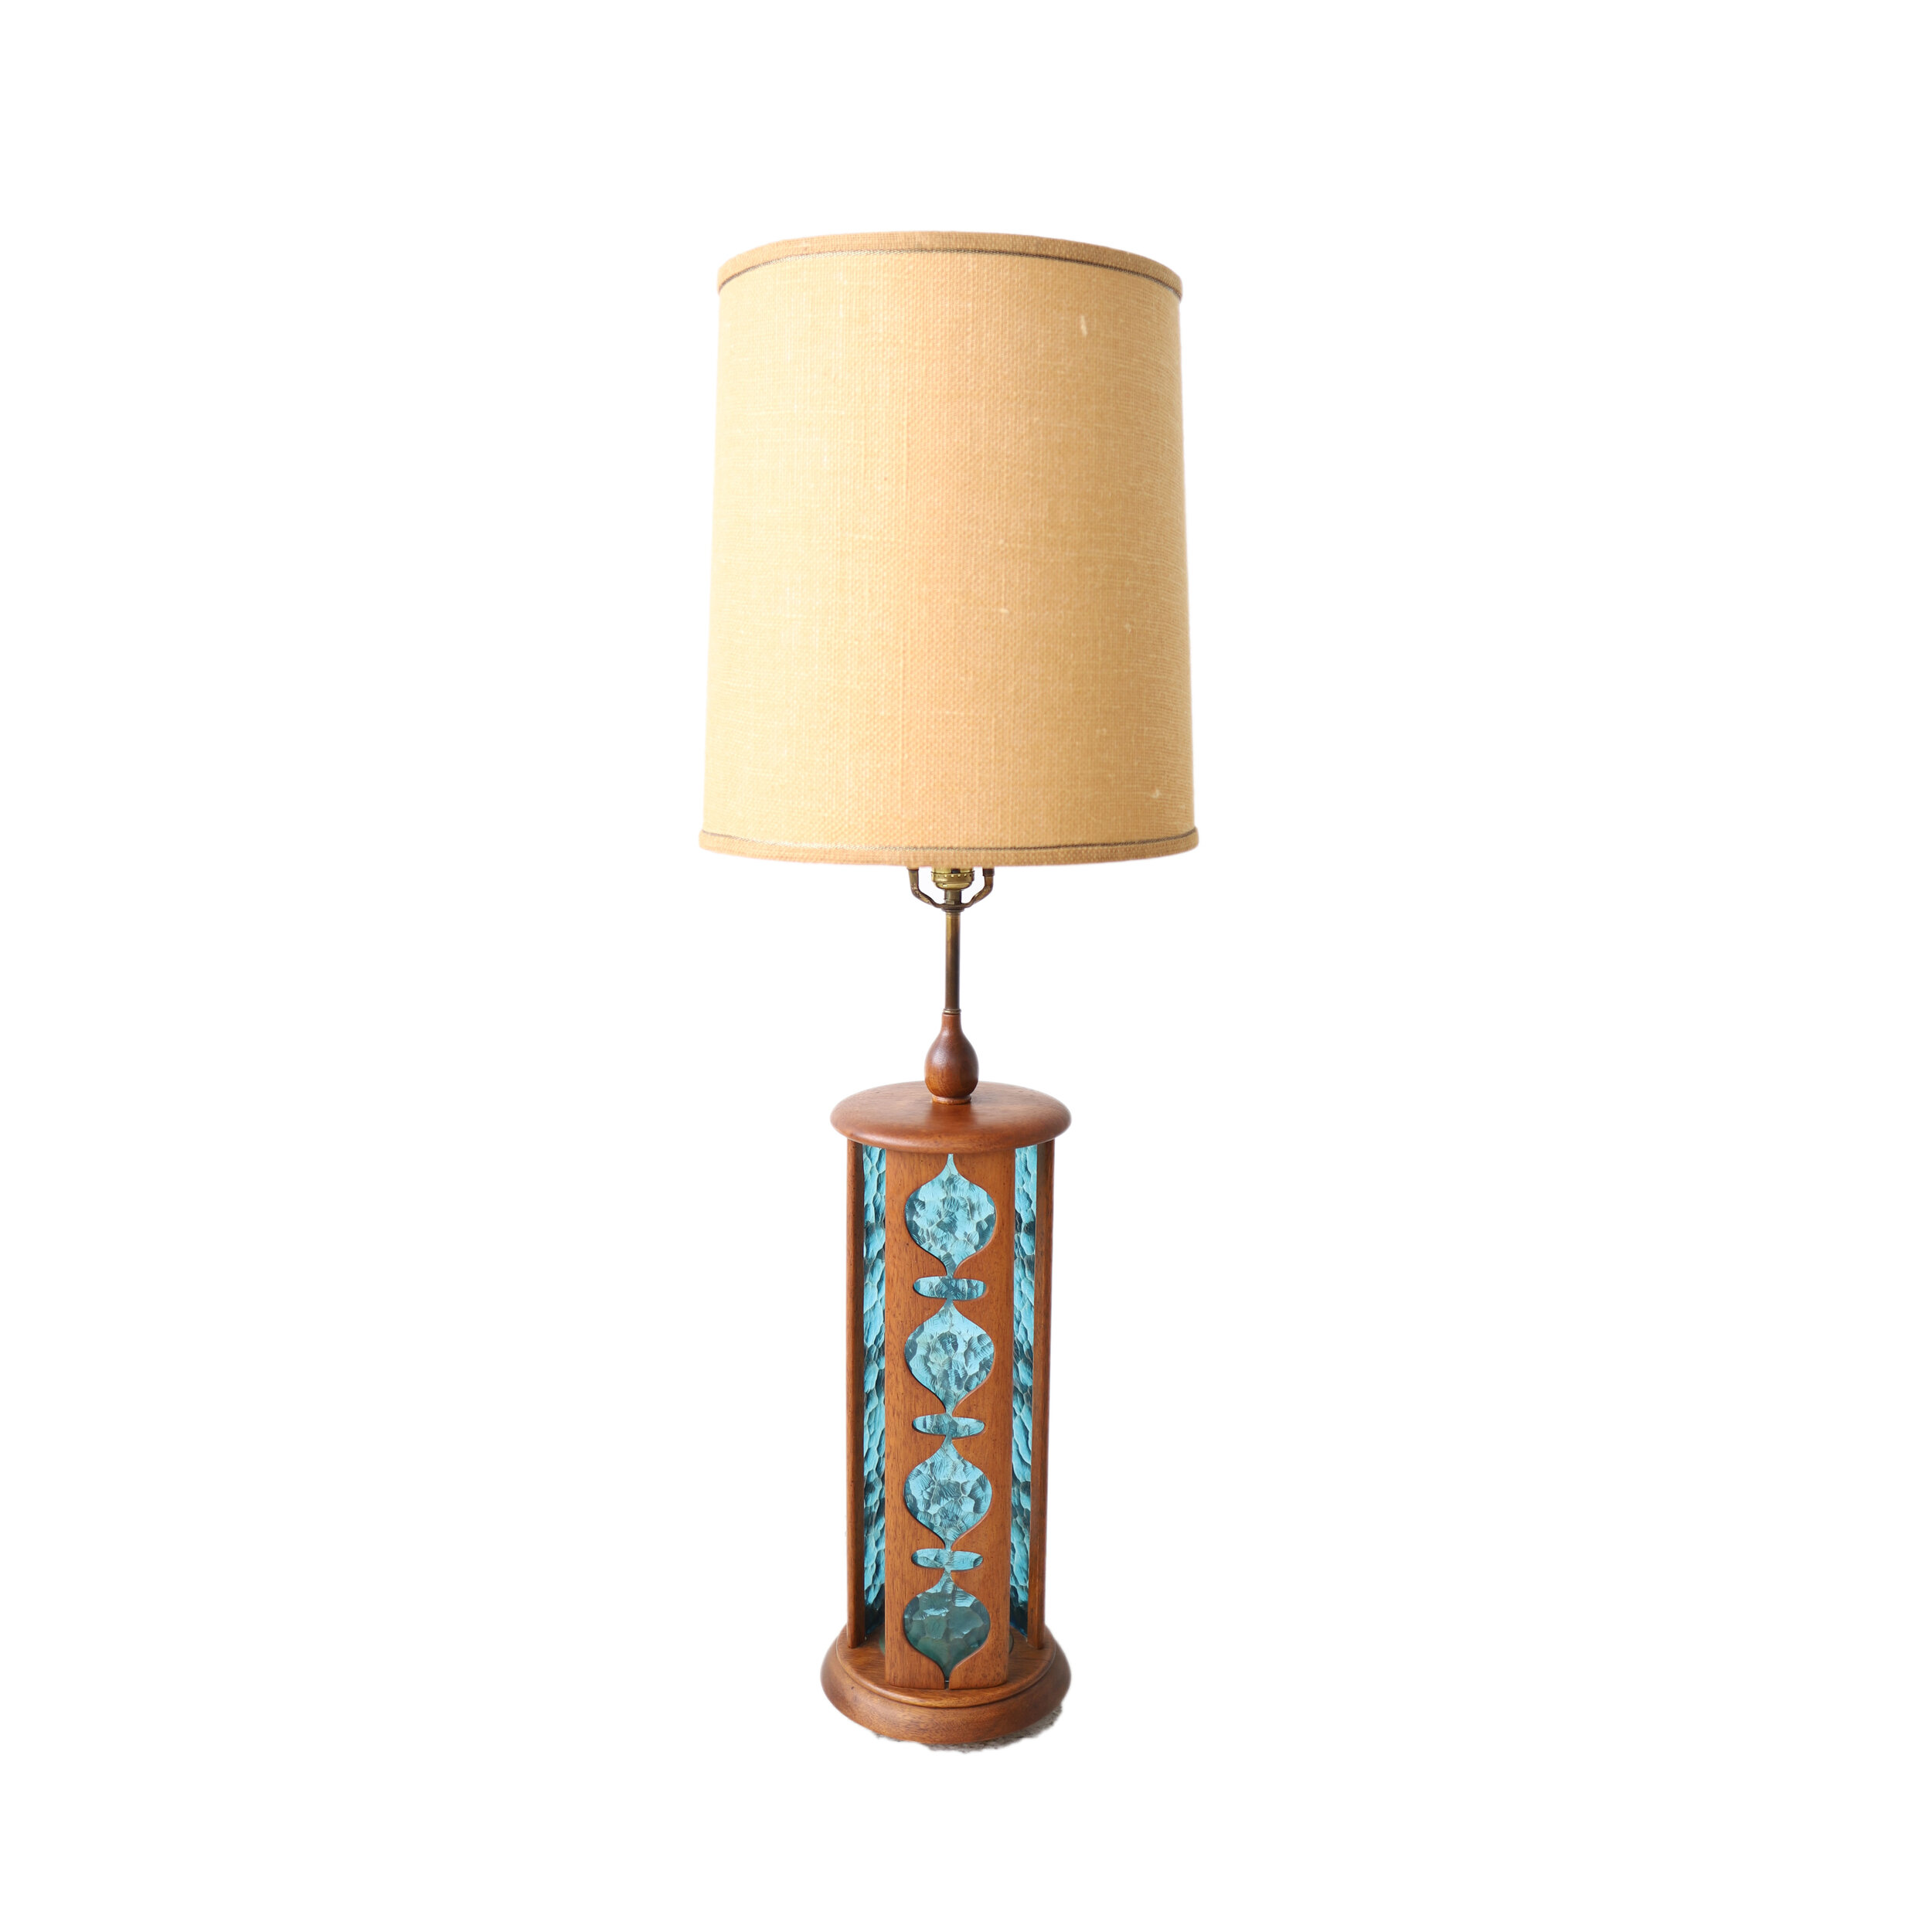 New Products Vintage Mid Century Modern Turquoise And Walnut Table Lamp At 1st Sight